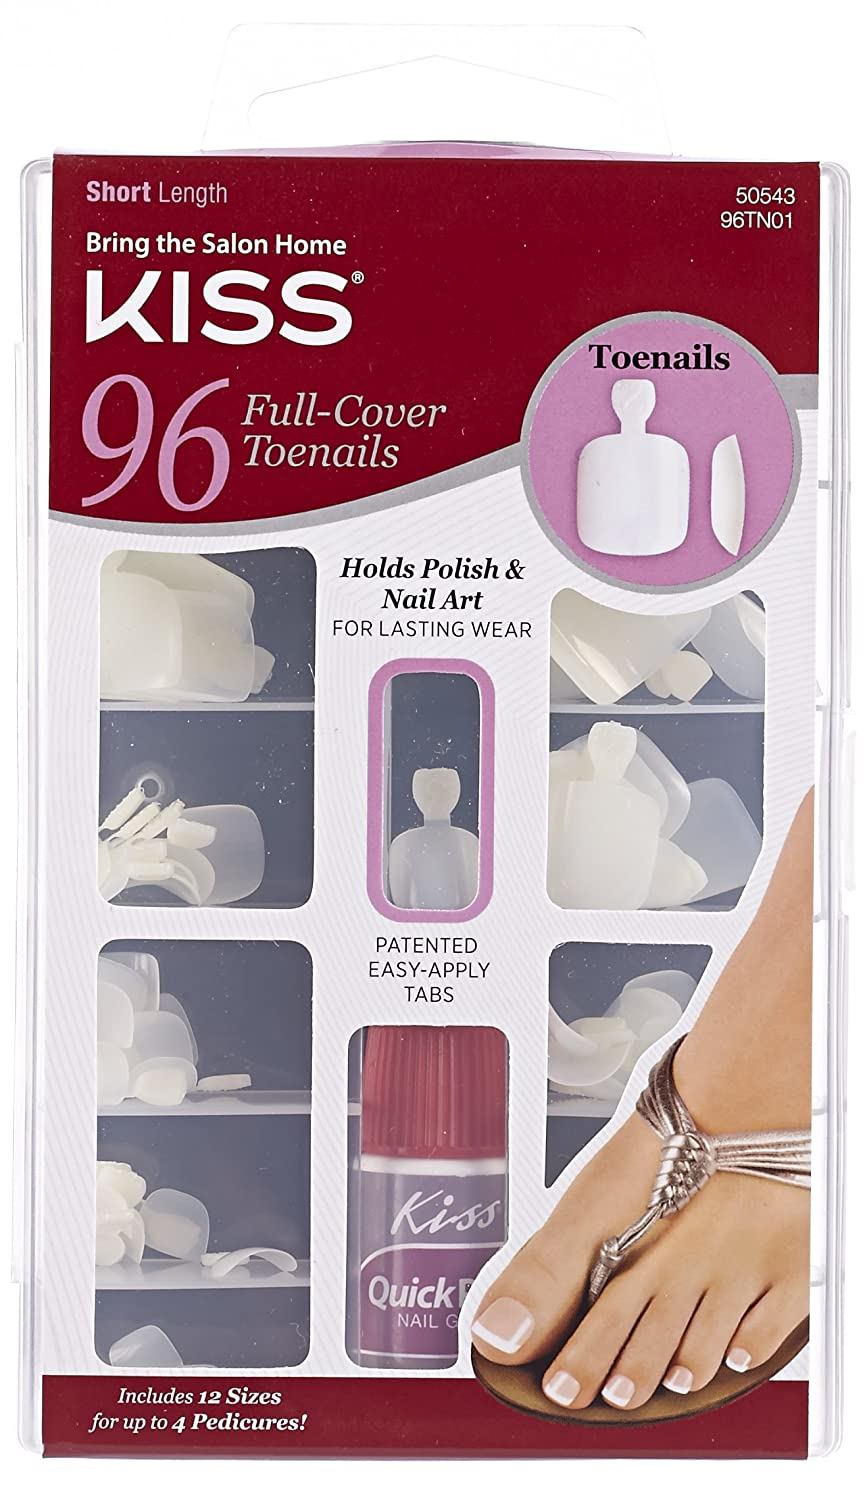 Amazon.com : Kiss Products 96 Full Cover Toenails, 0.2 Pound : False ...